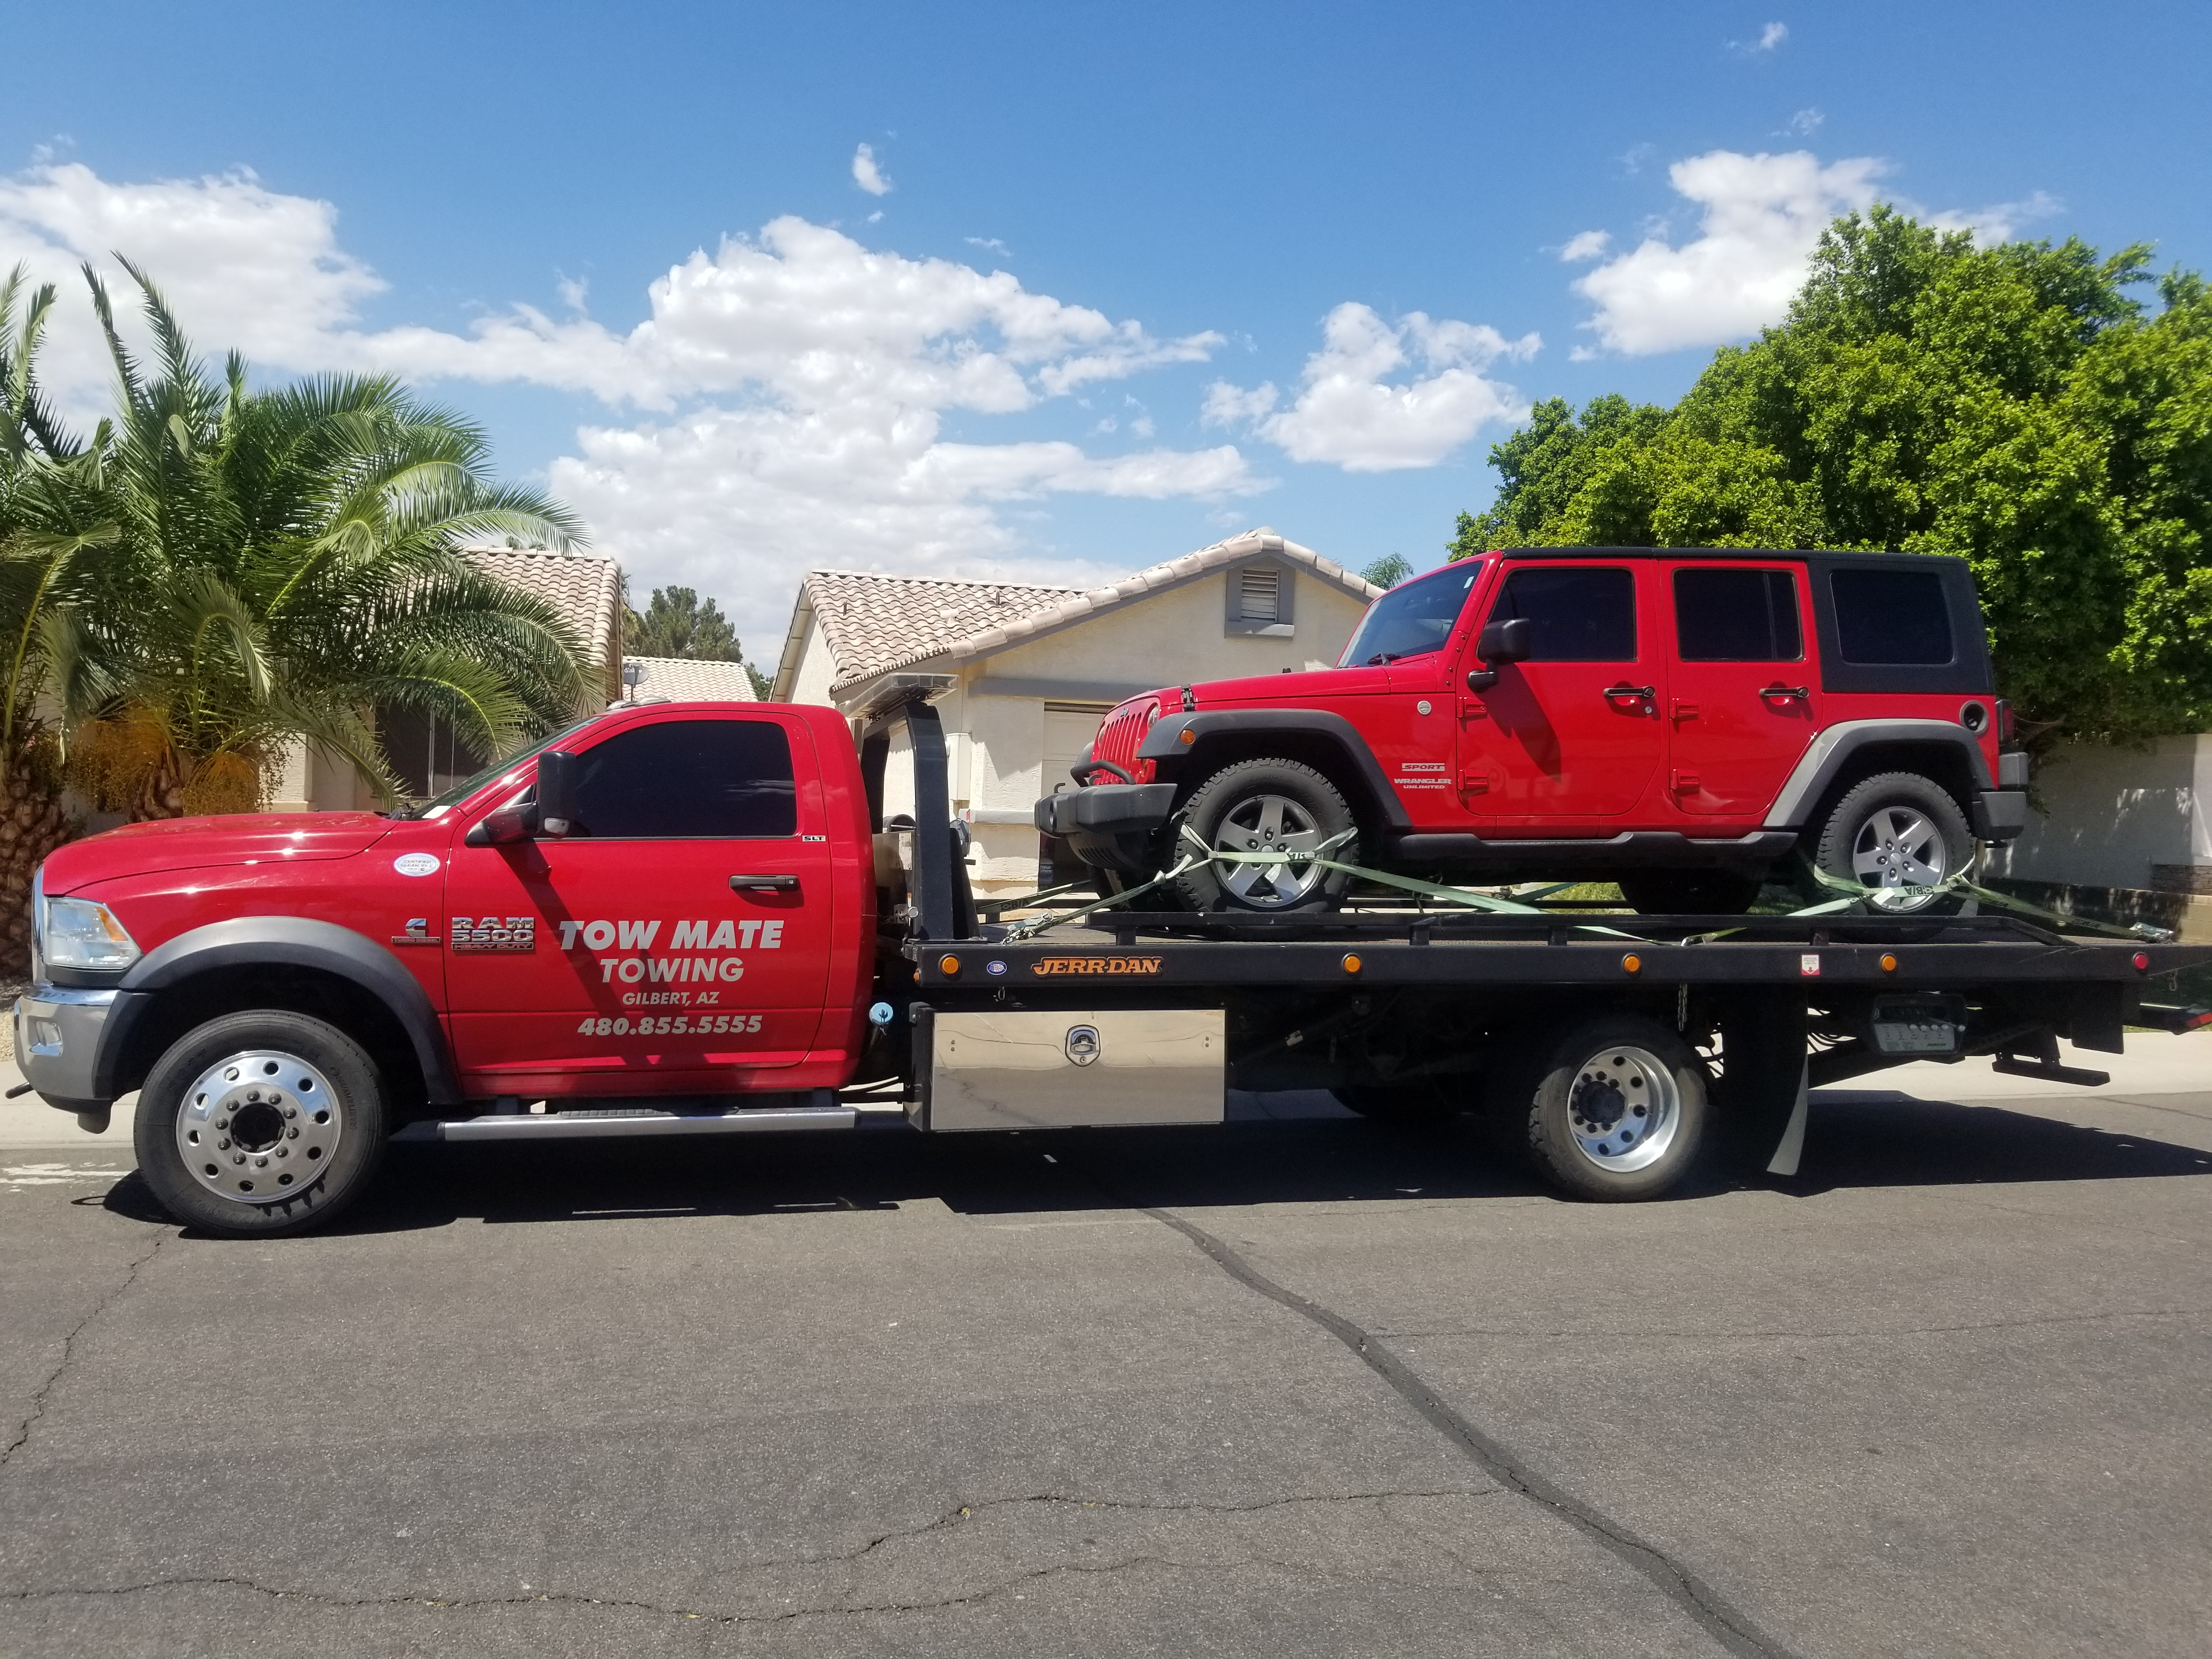 Tow Mate Towing Towing.com Profile Banner